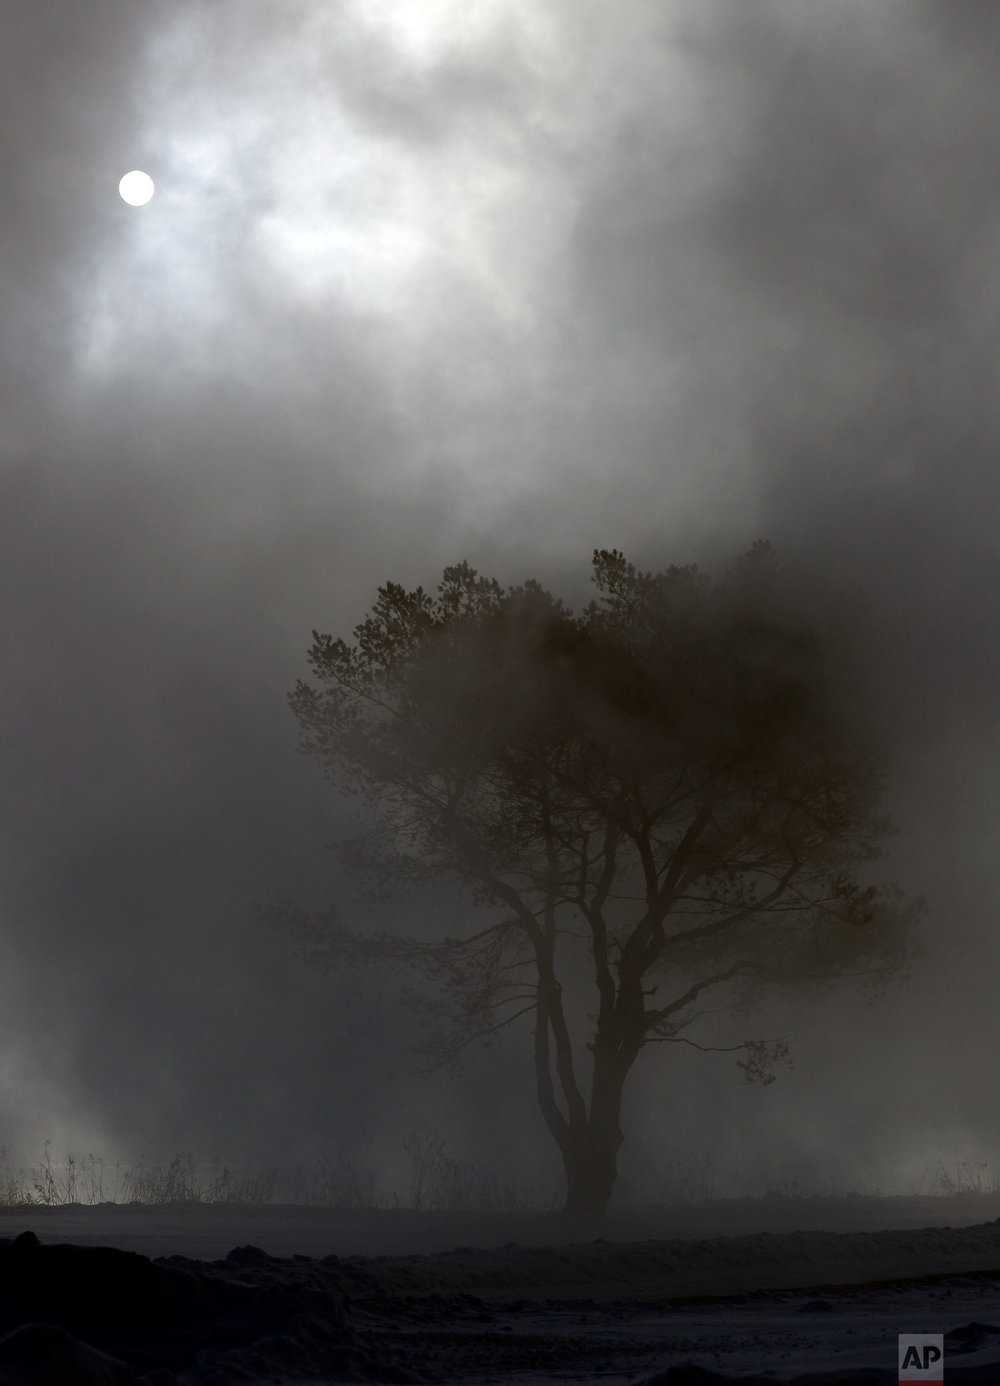 A tree is shrouded in fog at Northwestern University in Evanston, Ill., Wednesday, Jan. 30, 2019. (AP Photo/Nam Y. Huh)